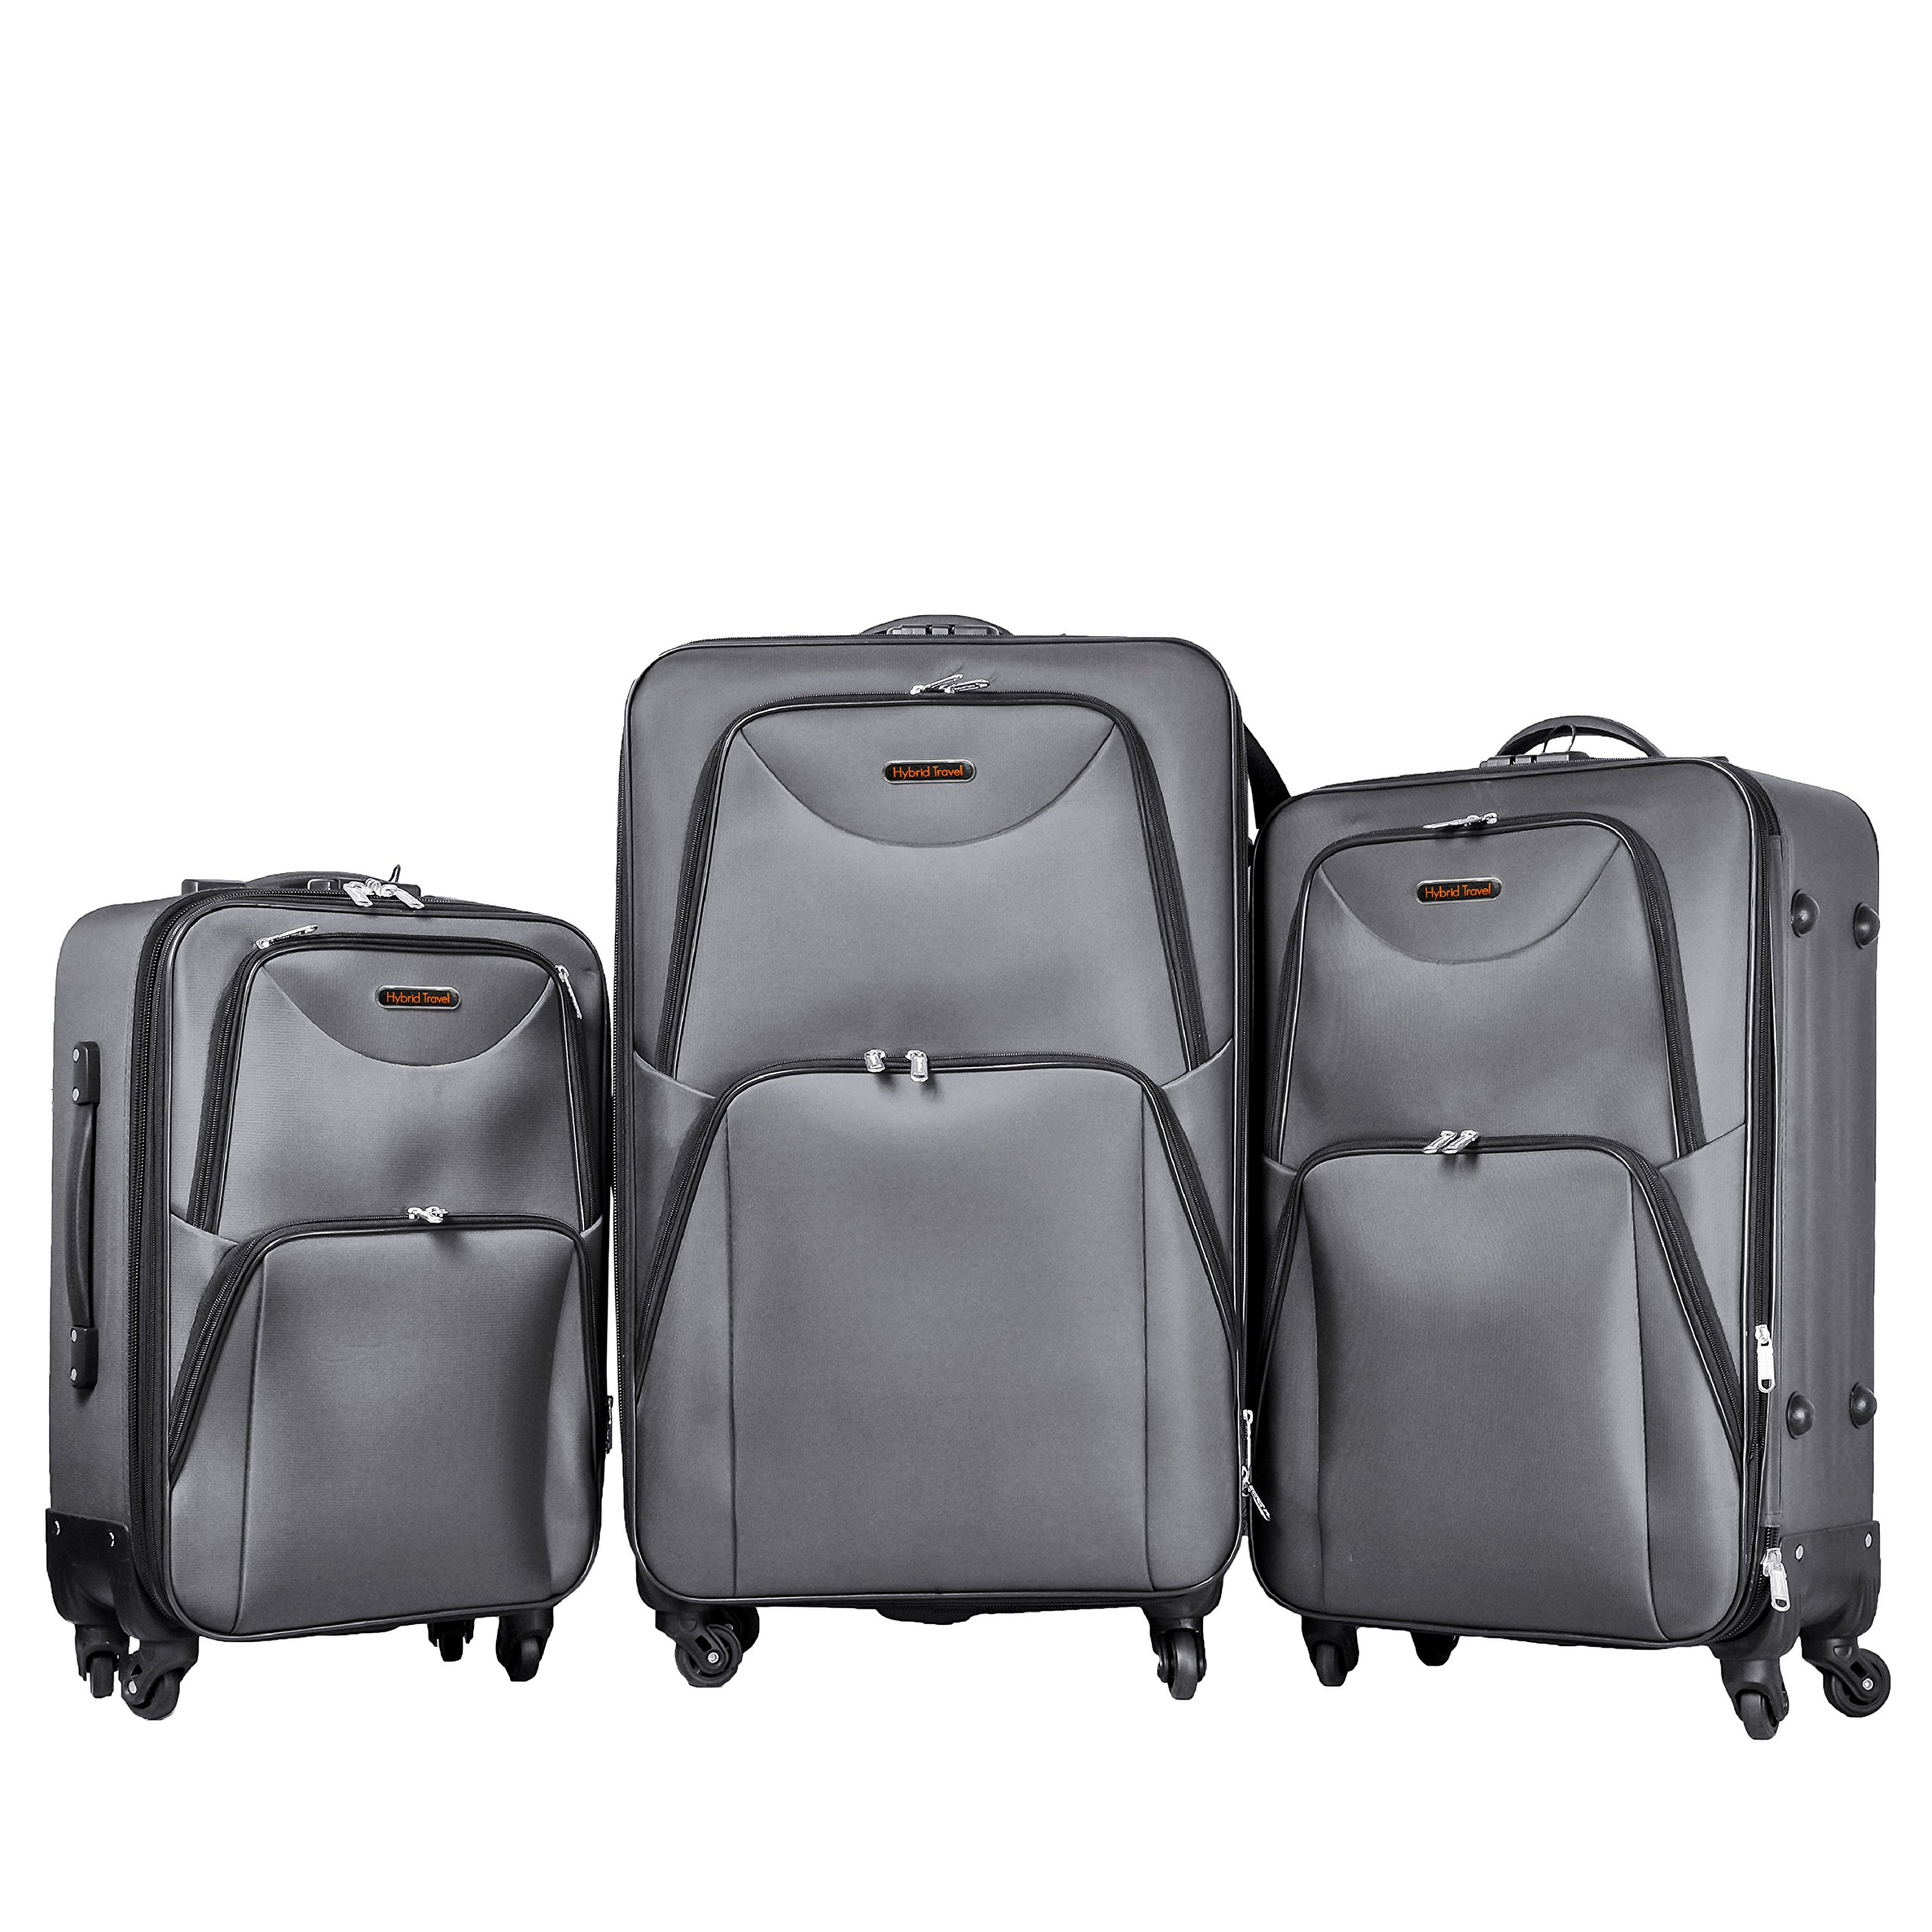 3 PC Luggage Set Durable Lightweight Soft Case Spinner Suitecase LUG3 ST1661 GREY